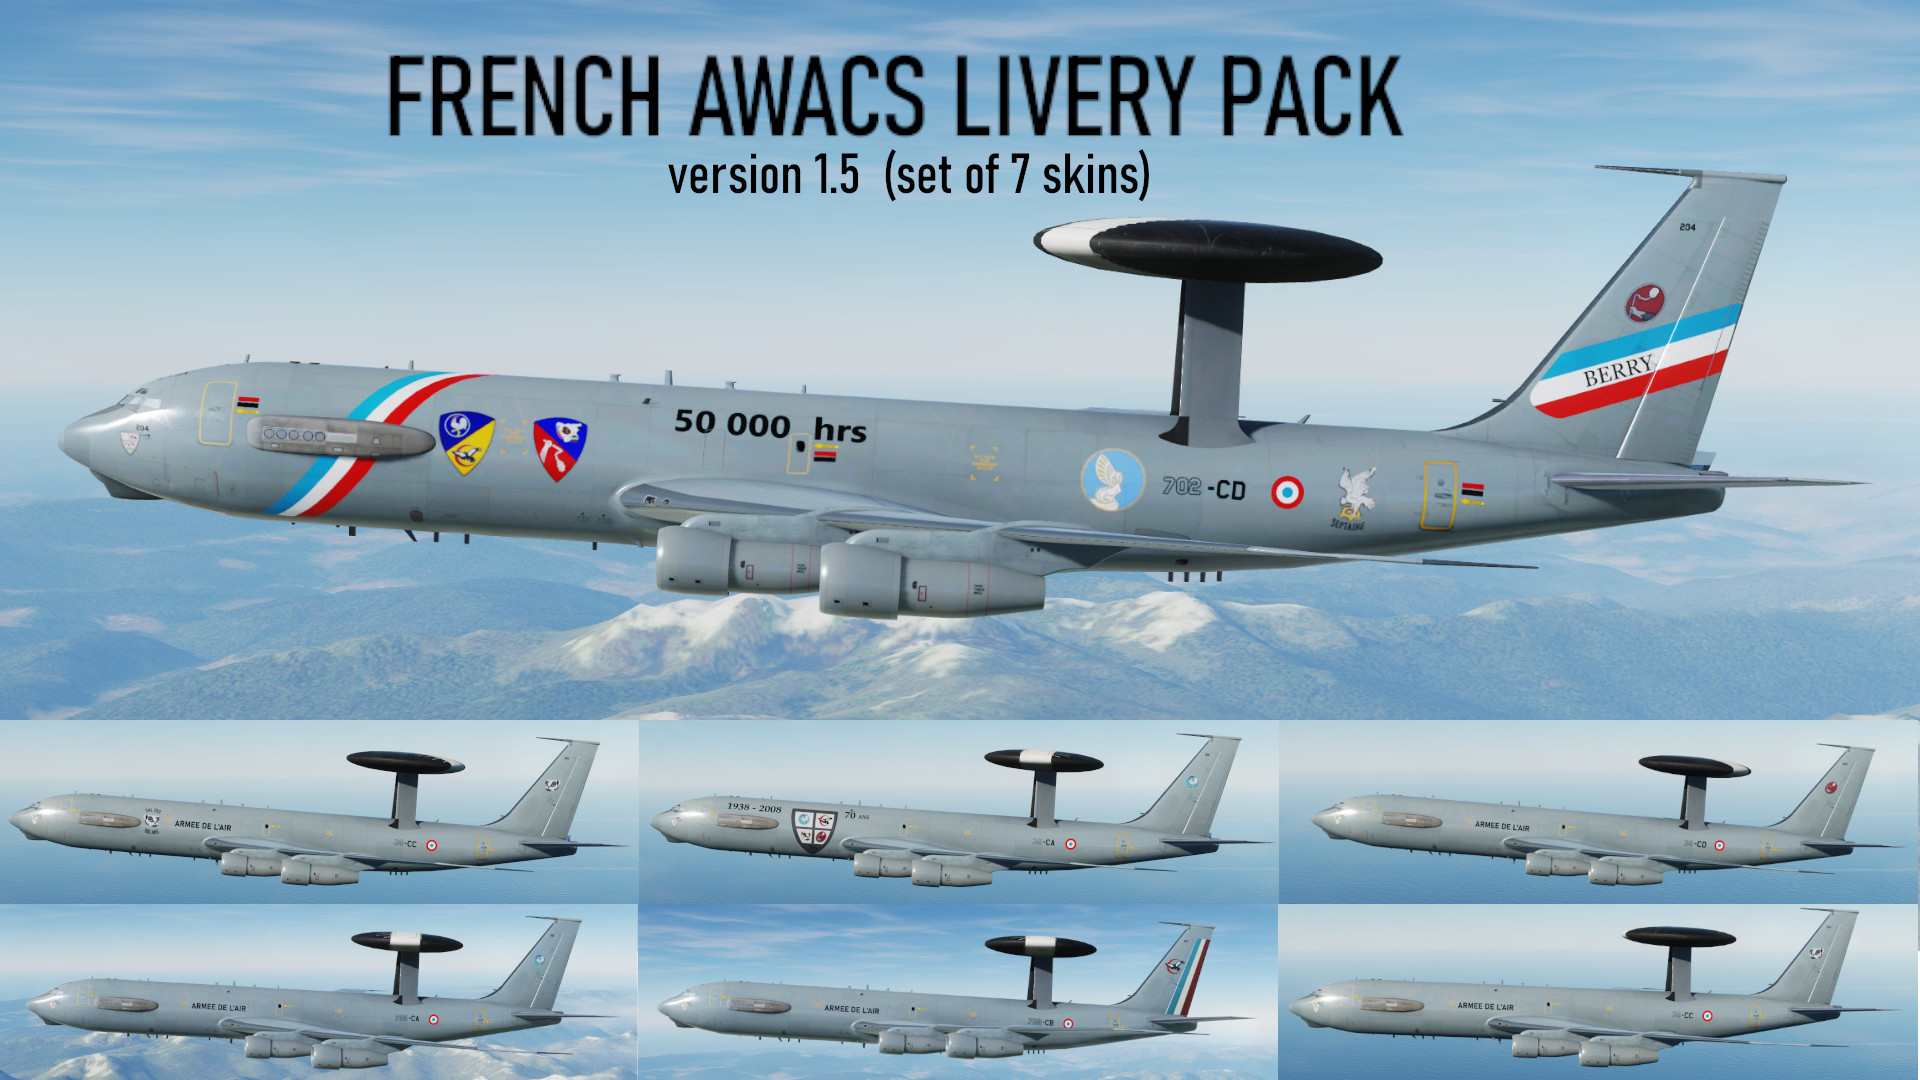 E-3 French AWACS Livery Pack